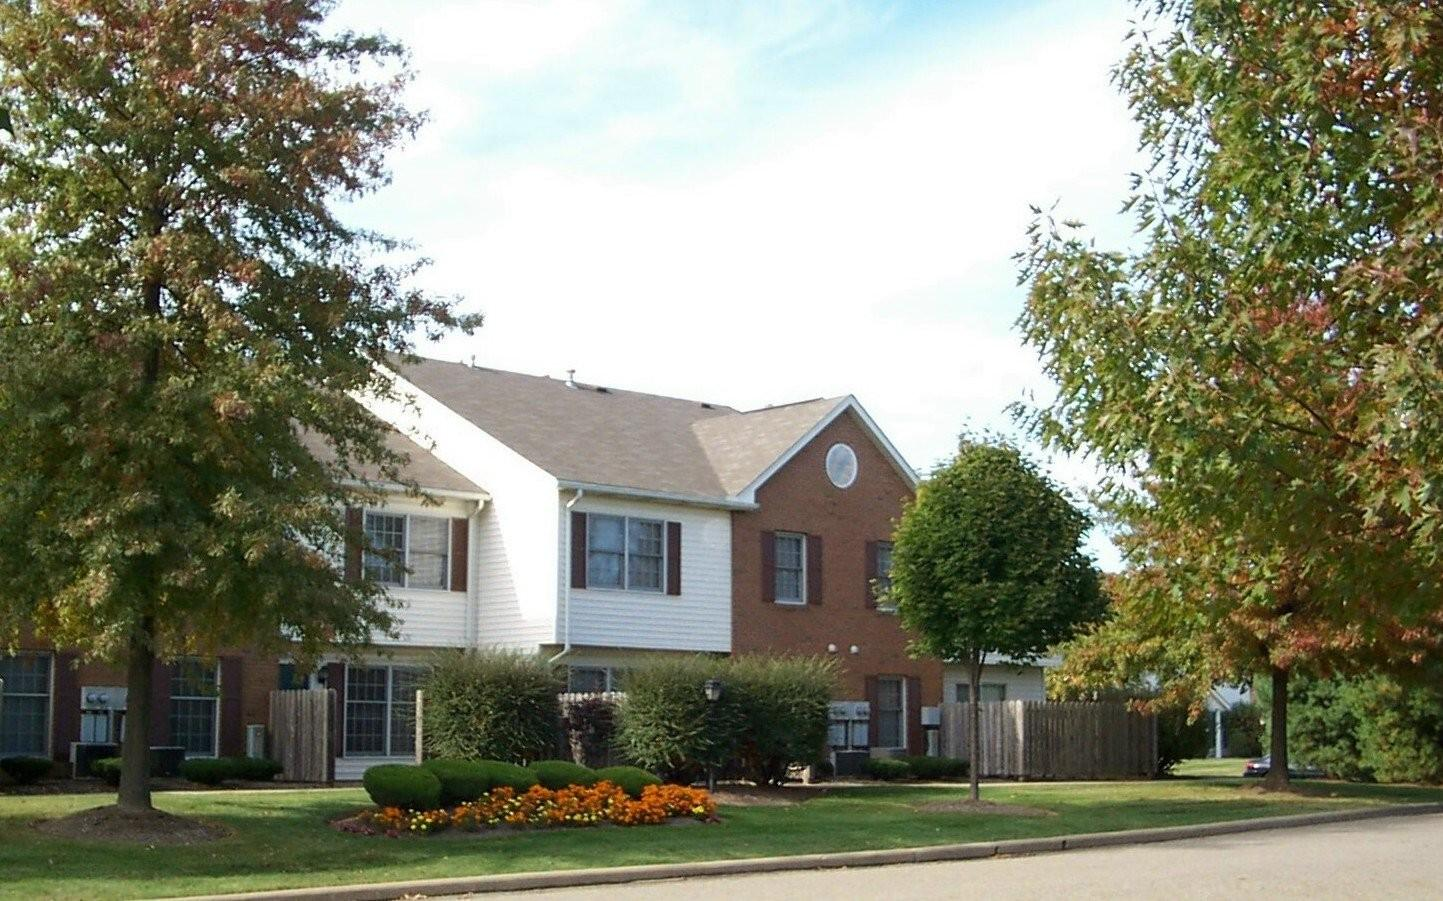 Remington Station Townhomes Apartments, North Canton OH - Walk Score